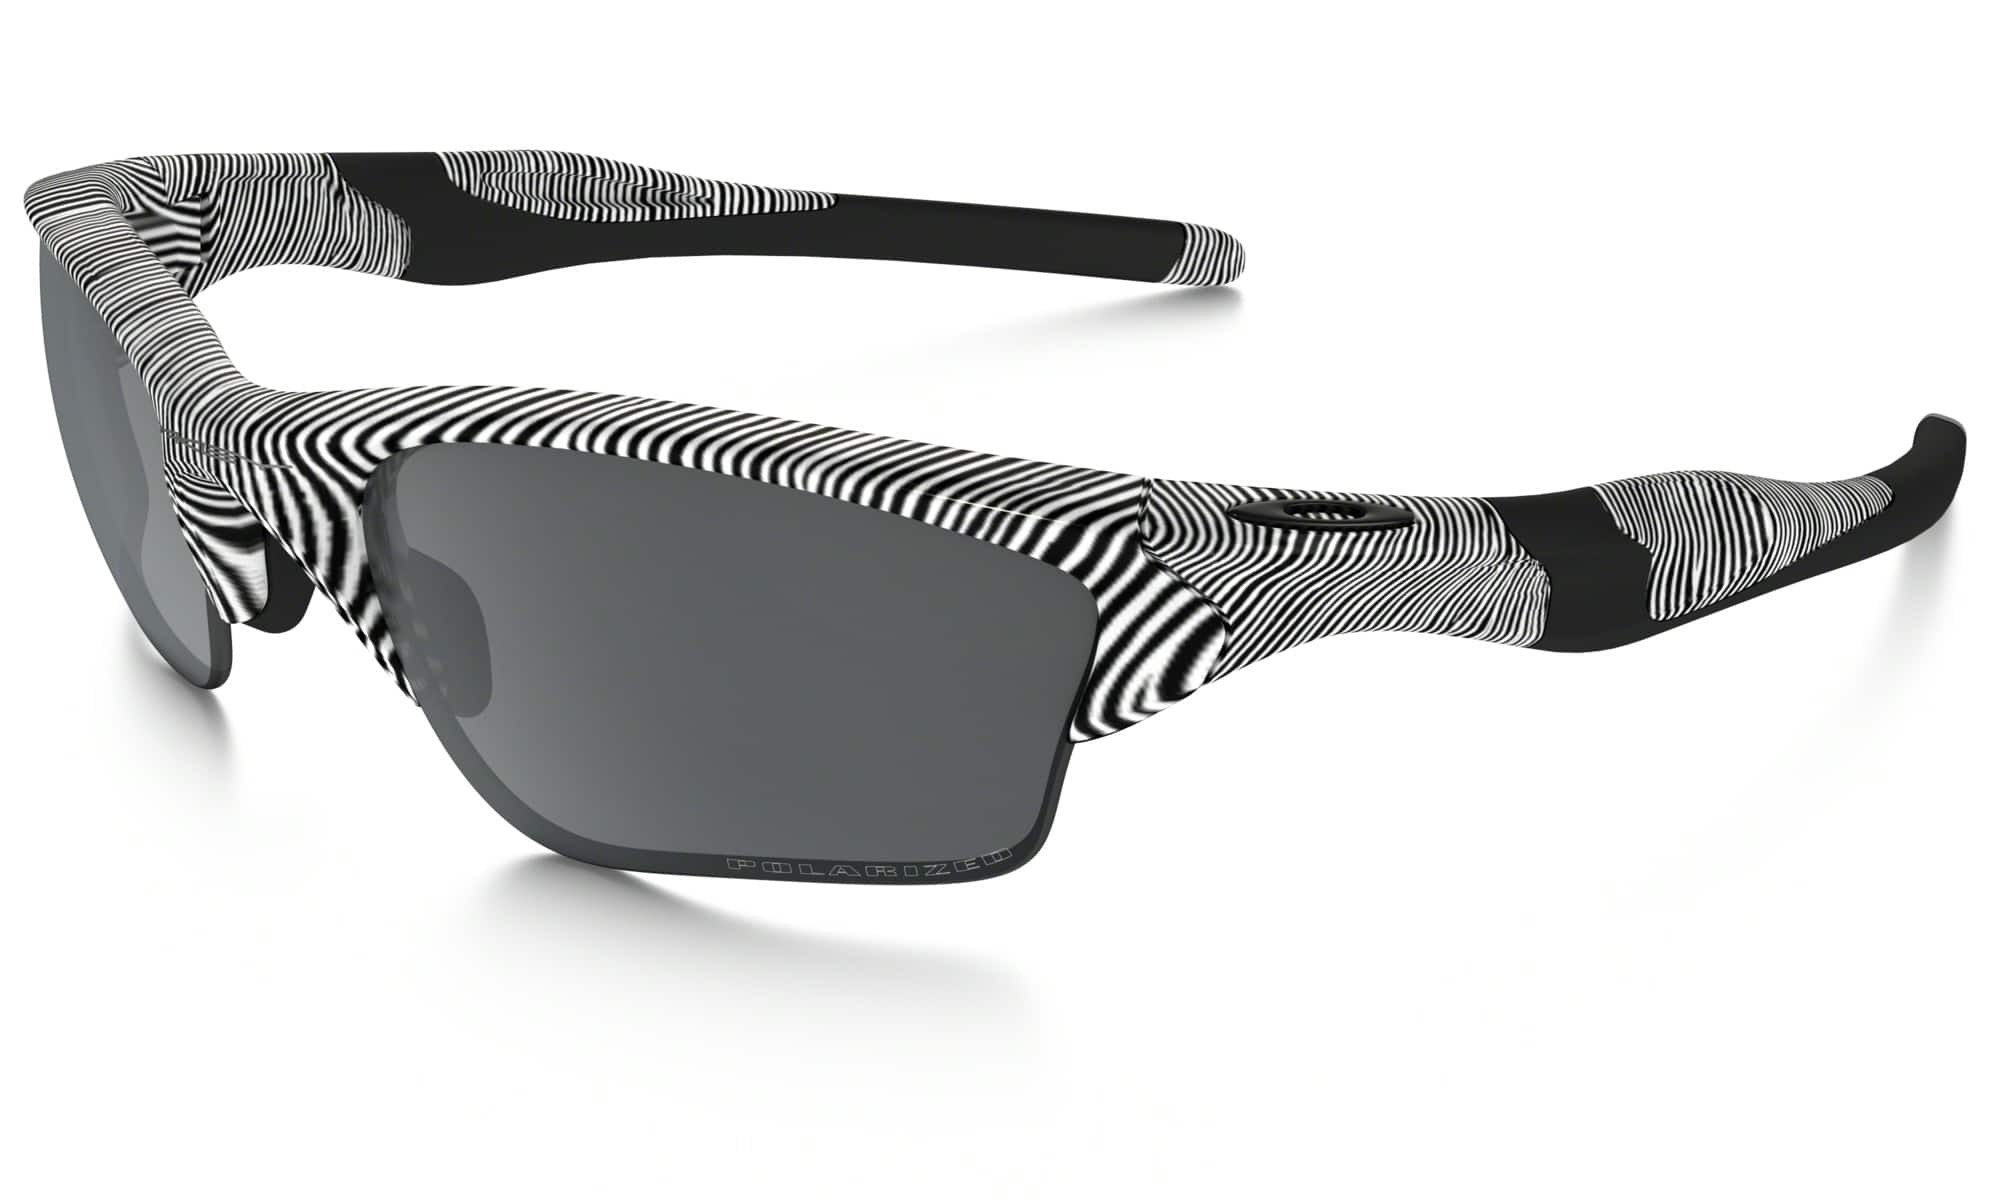 Oakley: Extra 25% Off All Sale Items Plus Free Shipping on $50+